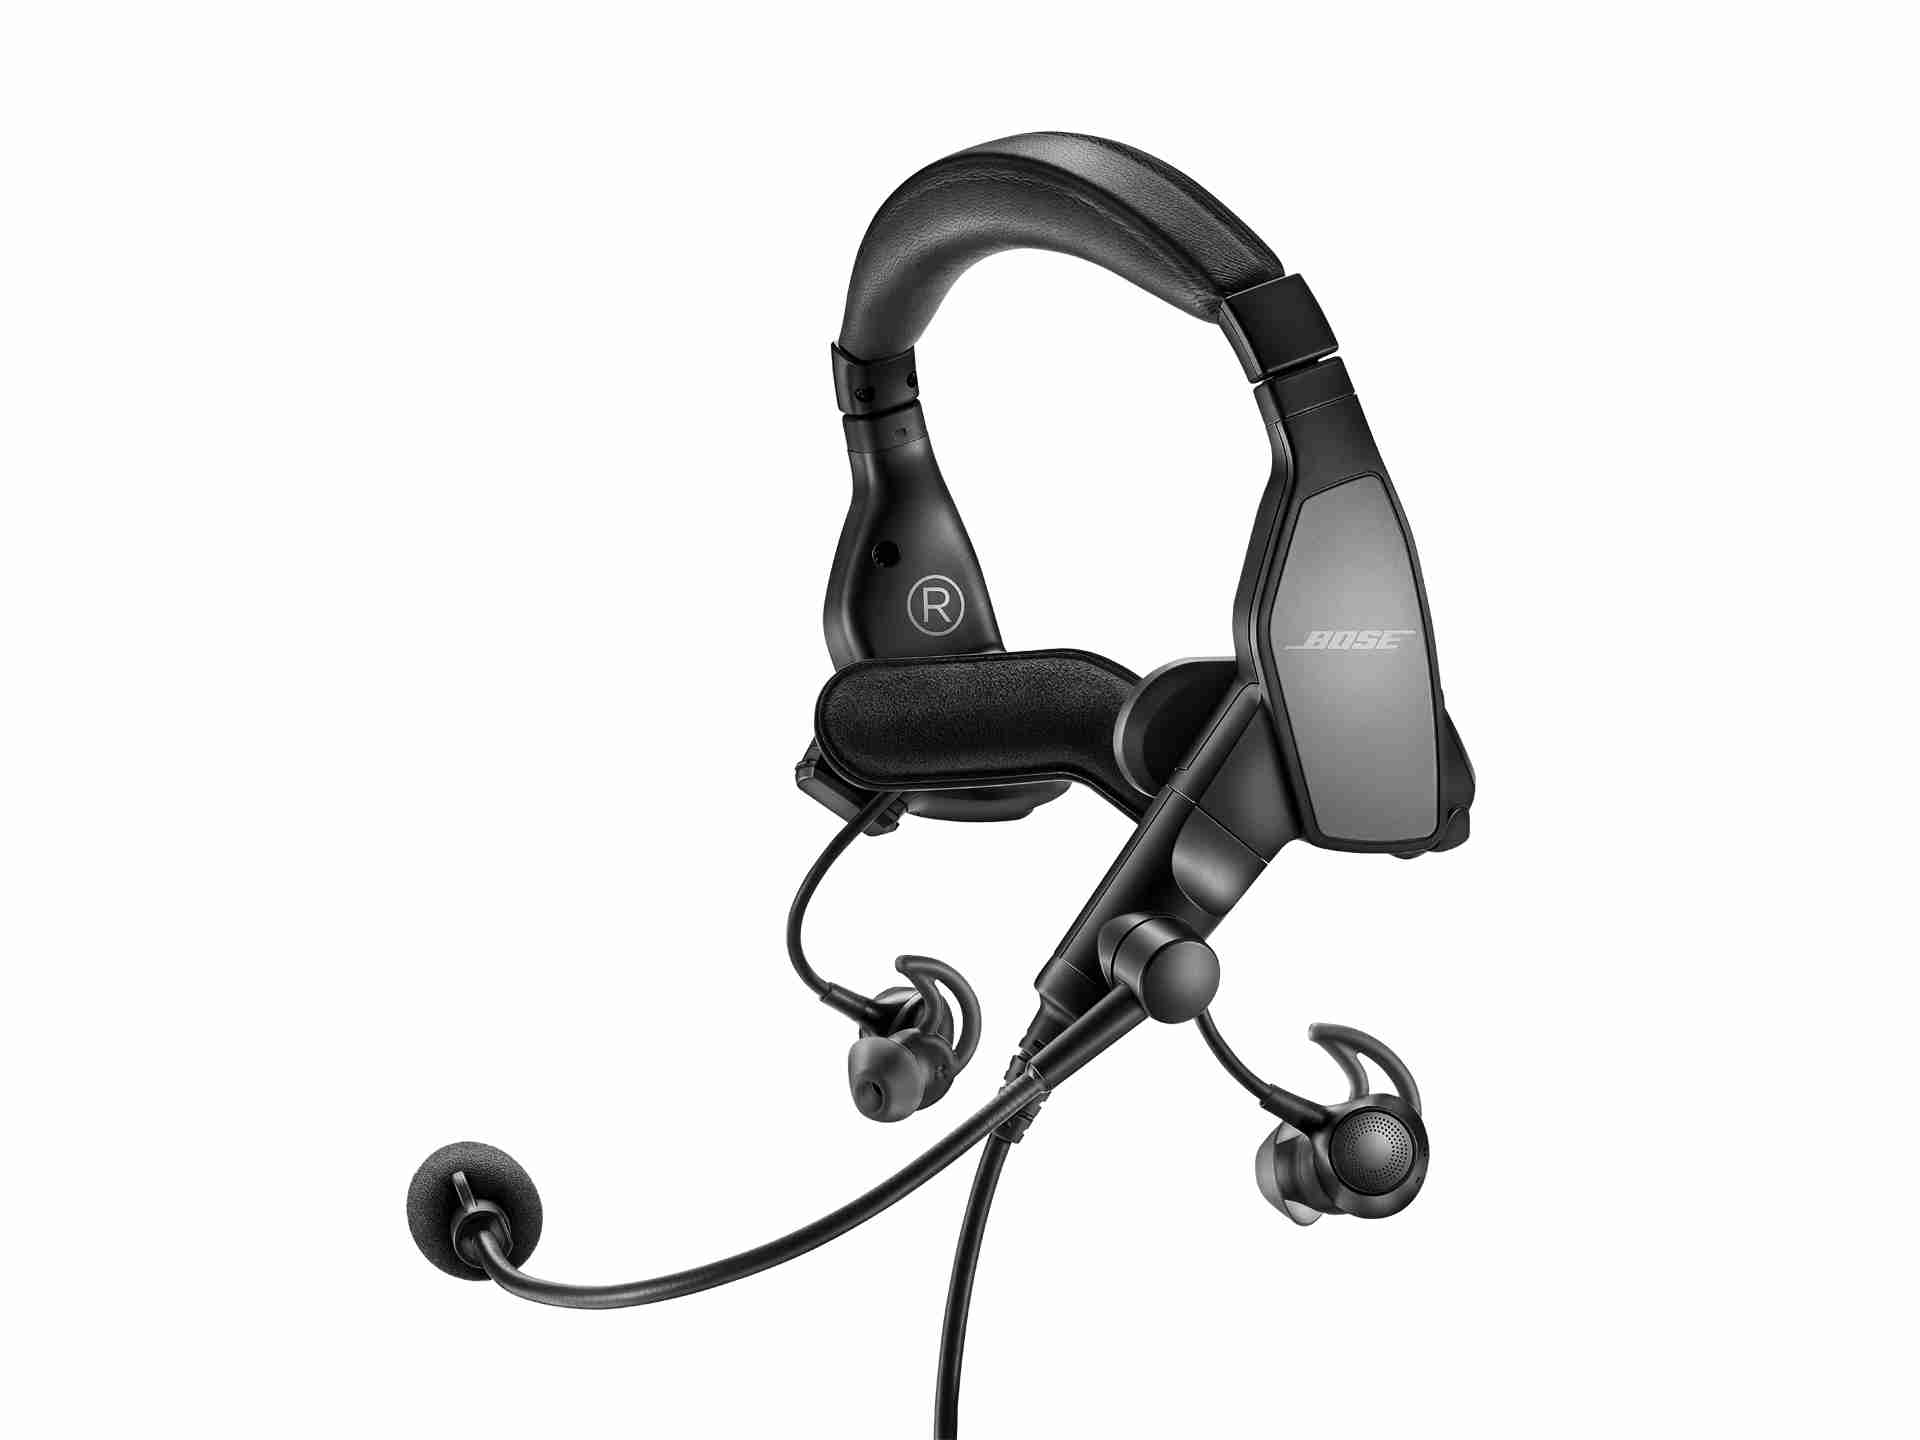 Casque d'Aviation ProFlight Série 2 - Bluetooth